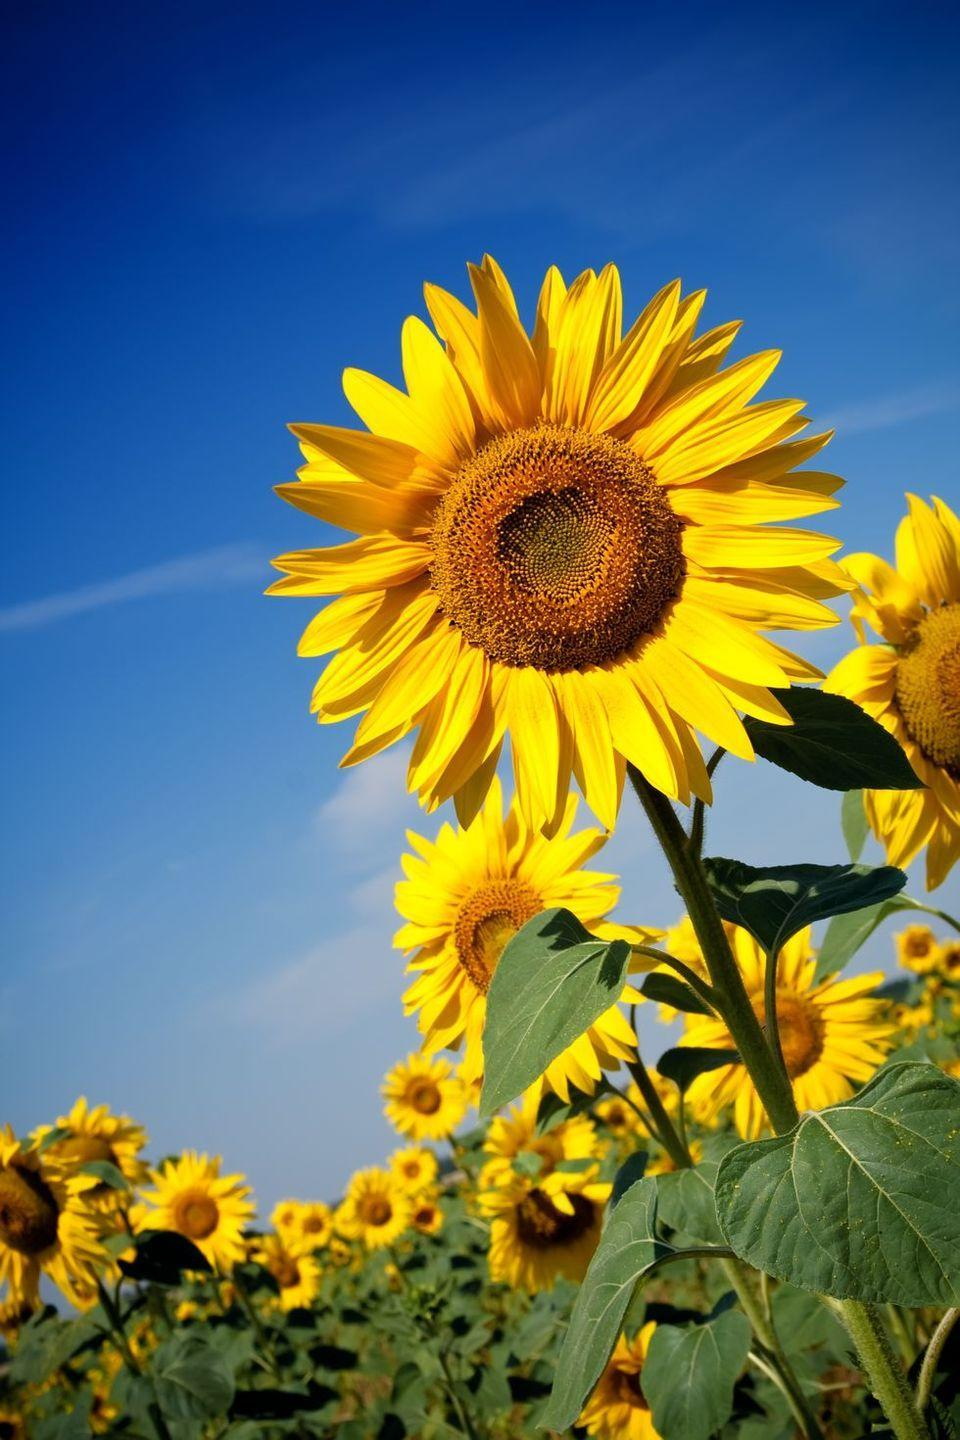 """<p>Legend has it that when Spanish explorers reached the Americas, they thought <a href=""""https://www.goodhousekeeping.com/home/gardening/a32638/sunflower-fun-facts/"""" rel=""""nofollow noopener"""" target=""""_blank"""" data-ylk=""""slk:sunflowers"""" class=""""link rapid-noclick-resp"""">sunflowers</a> were made of real gold. Can you blame them? Of course, they were wrong. That's where the sunflower got its symbolism of """"false riches."""" </p>"""